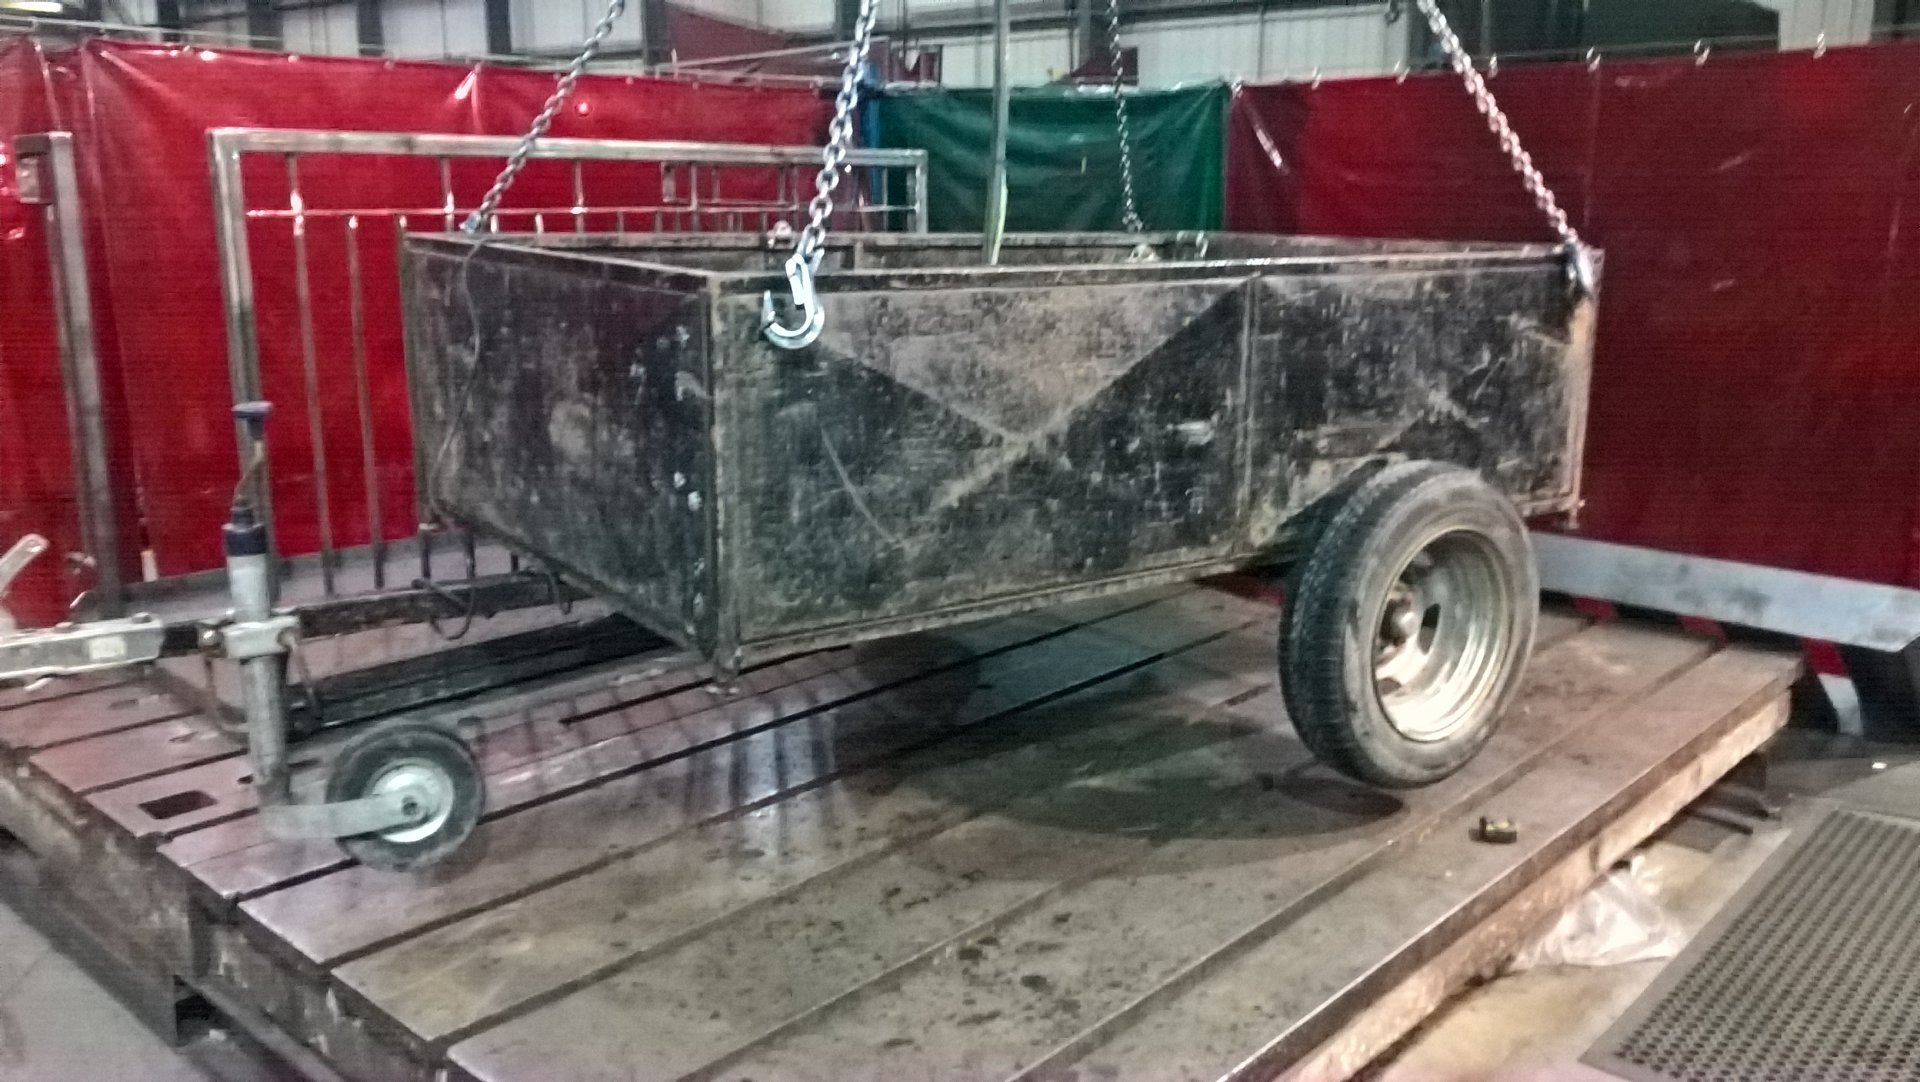 camping trailer refurb | IH8MUD Forum